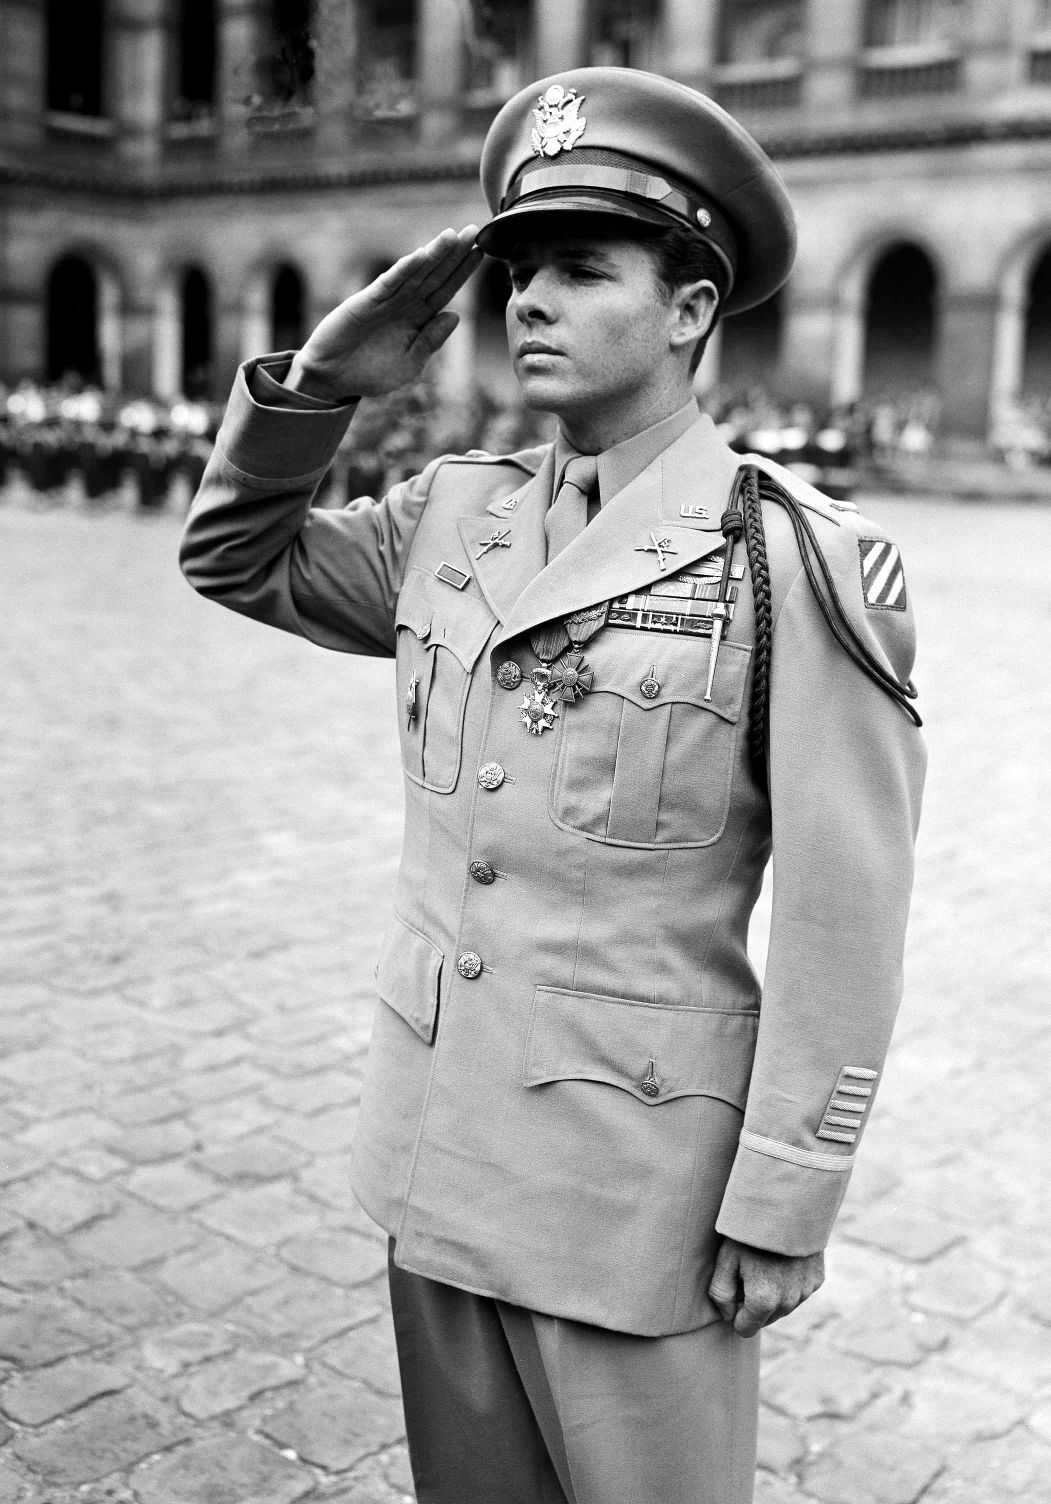 Baylor Historians Audie Murphy Biography Explores WWII Heros PTSD - Audie